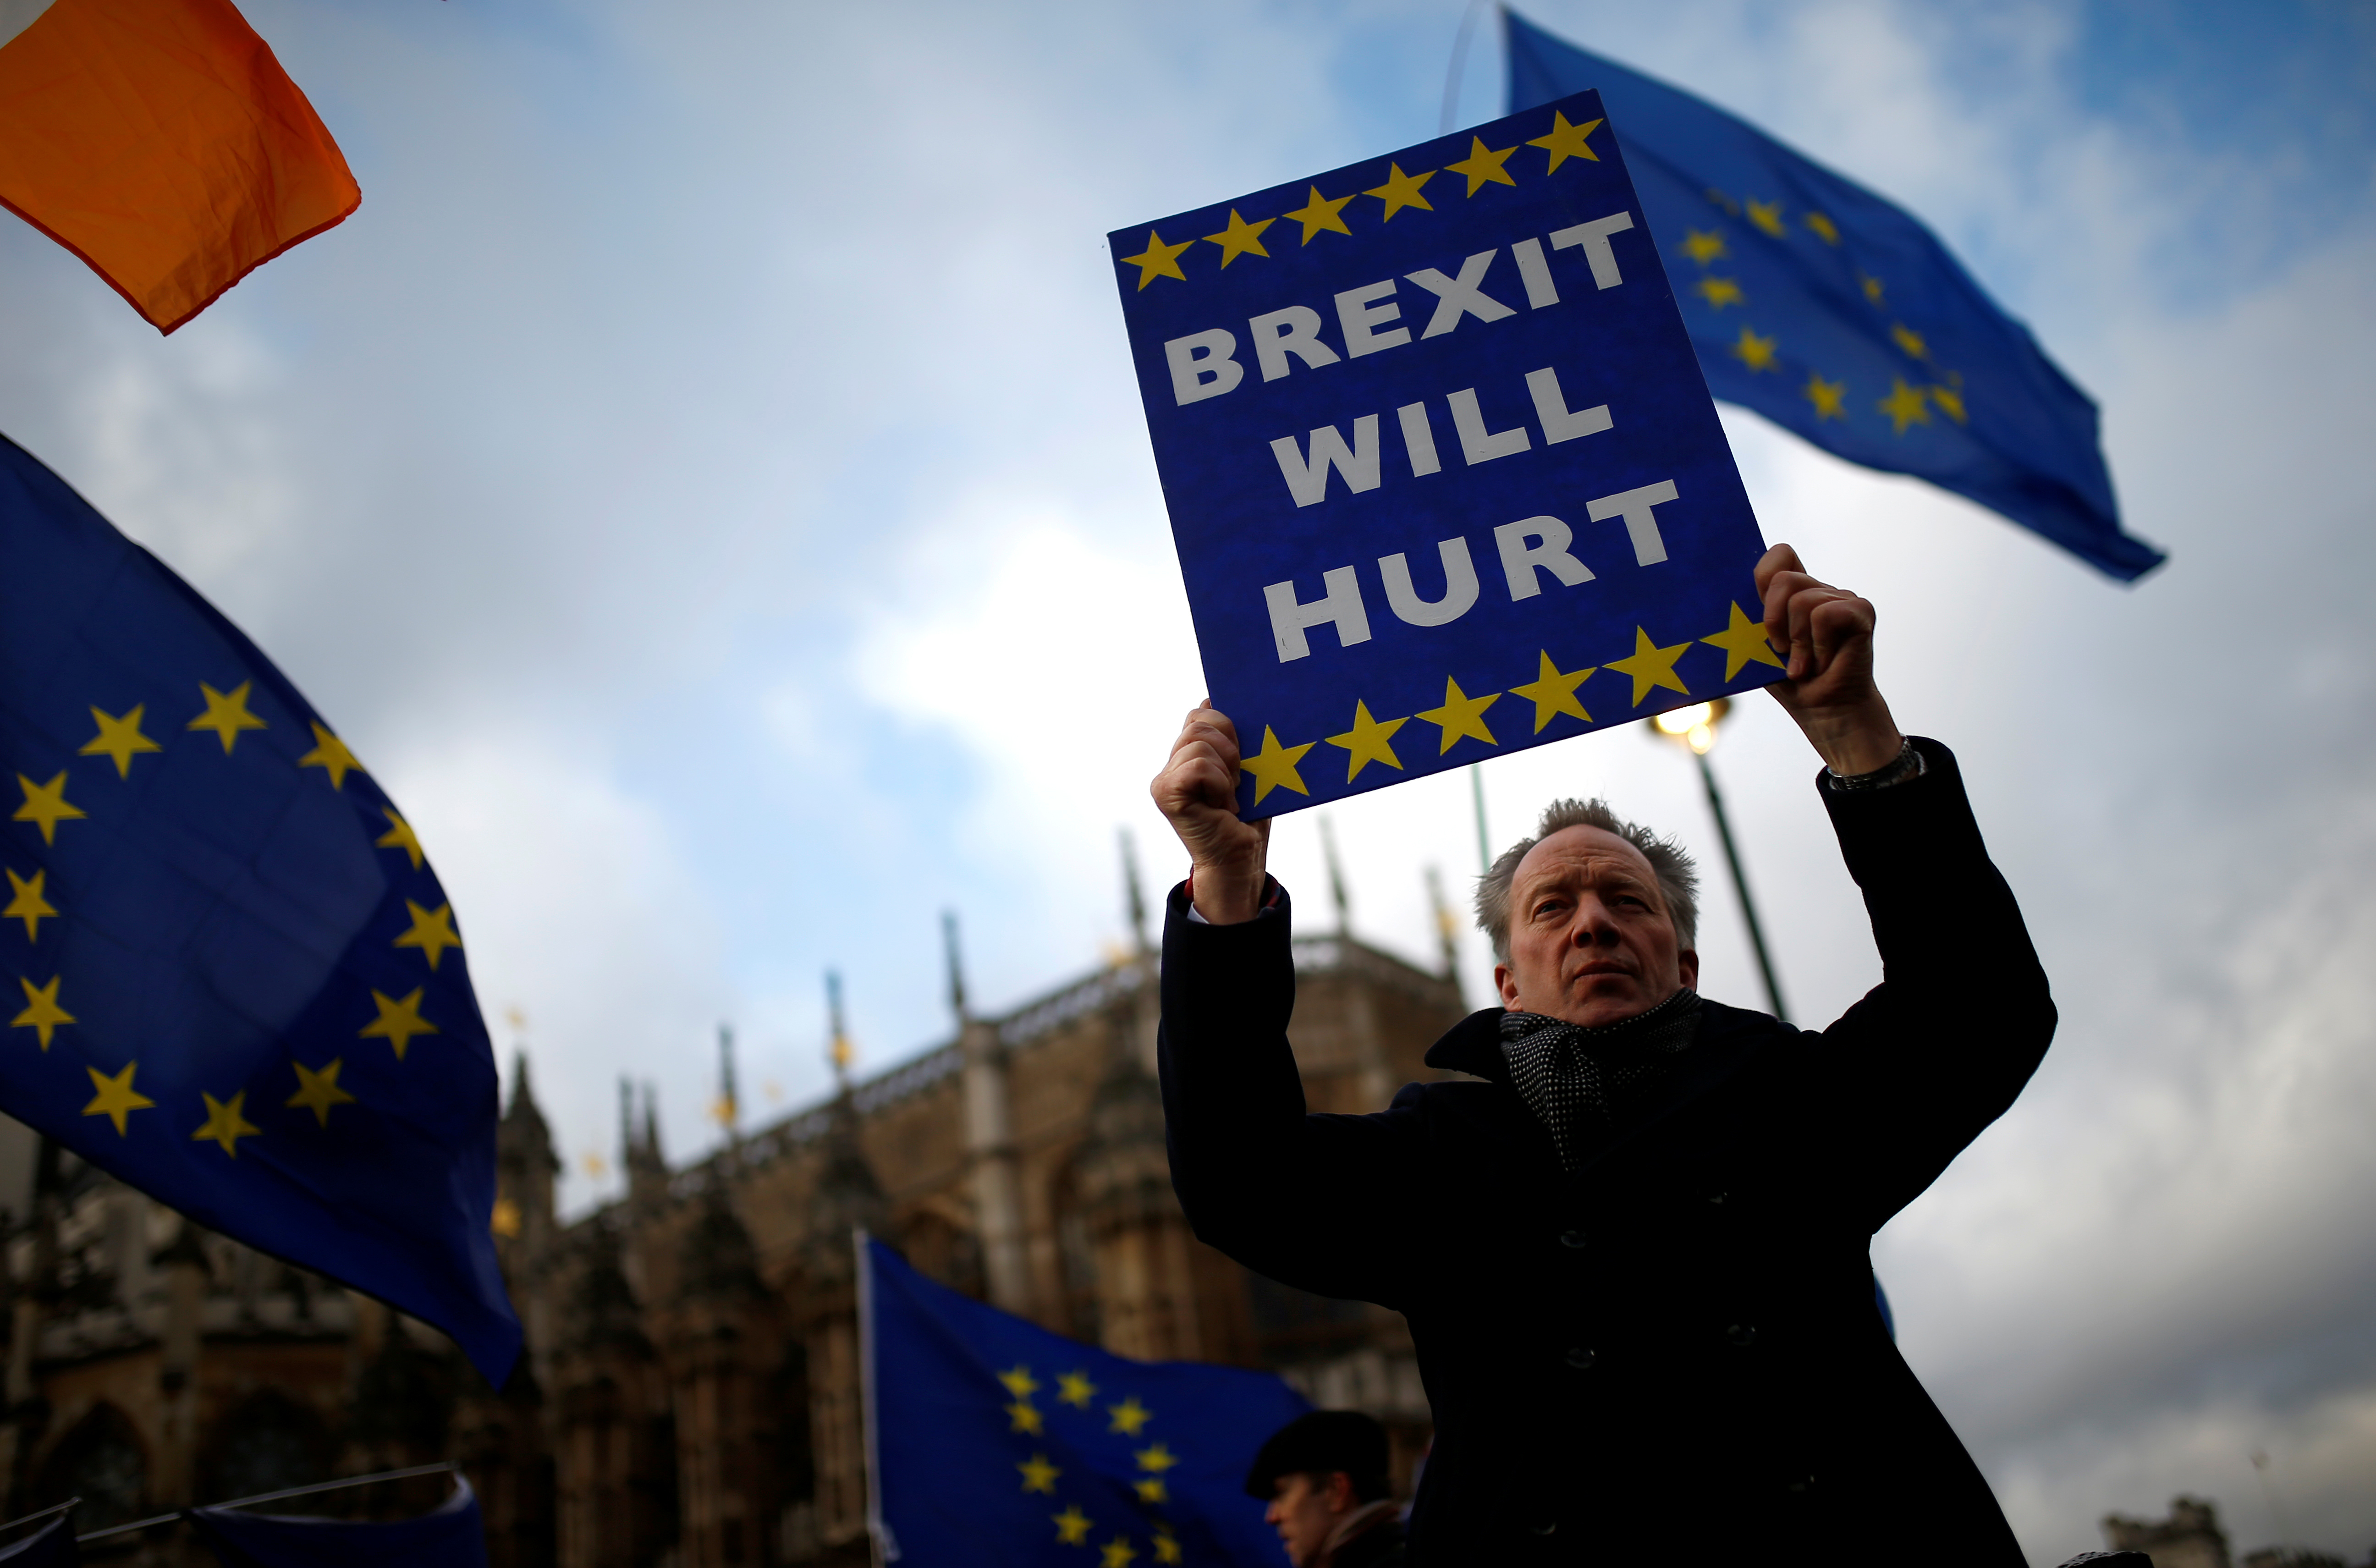 An anti-Brexit protester demonstrates outside the Houses of Parliament in London, Britain, March 12, 2019.